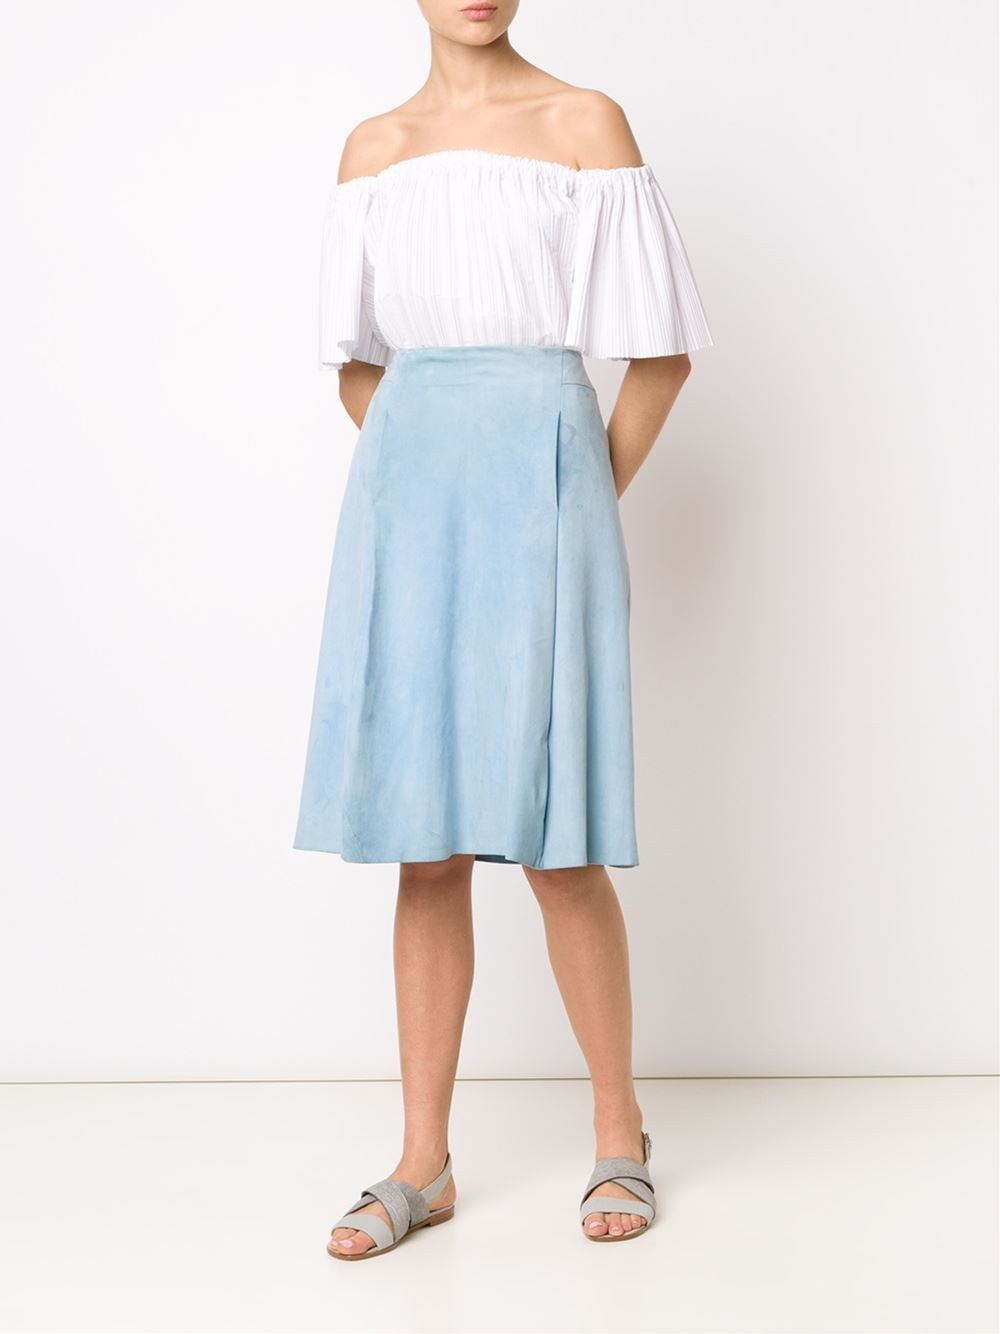 adam lippes suede midi skirt in blue light blue lyst